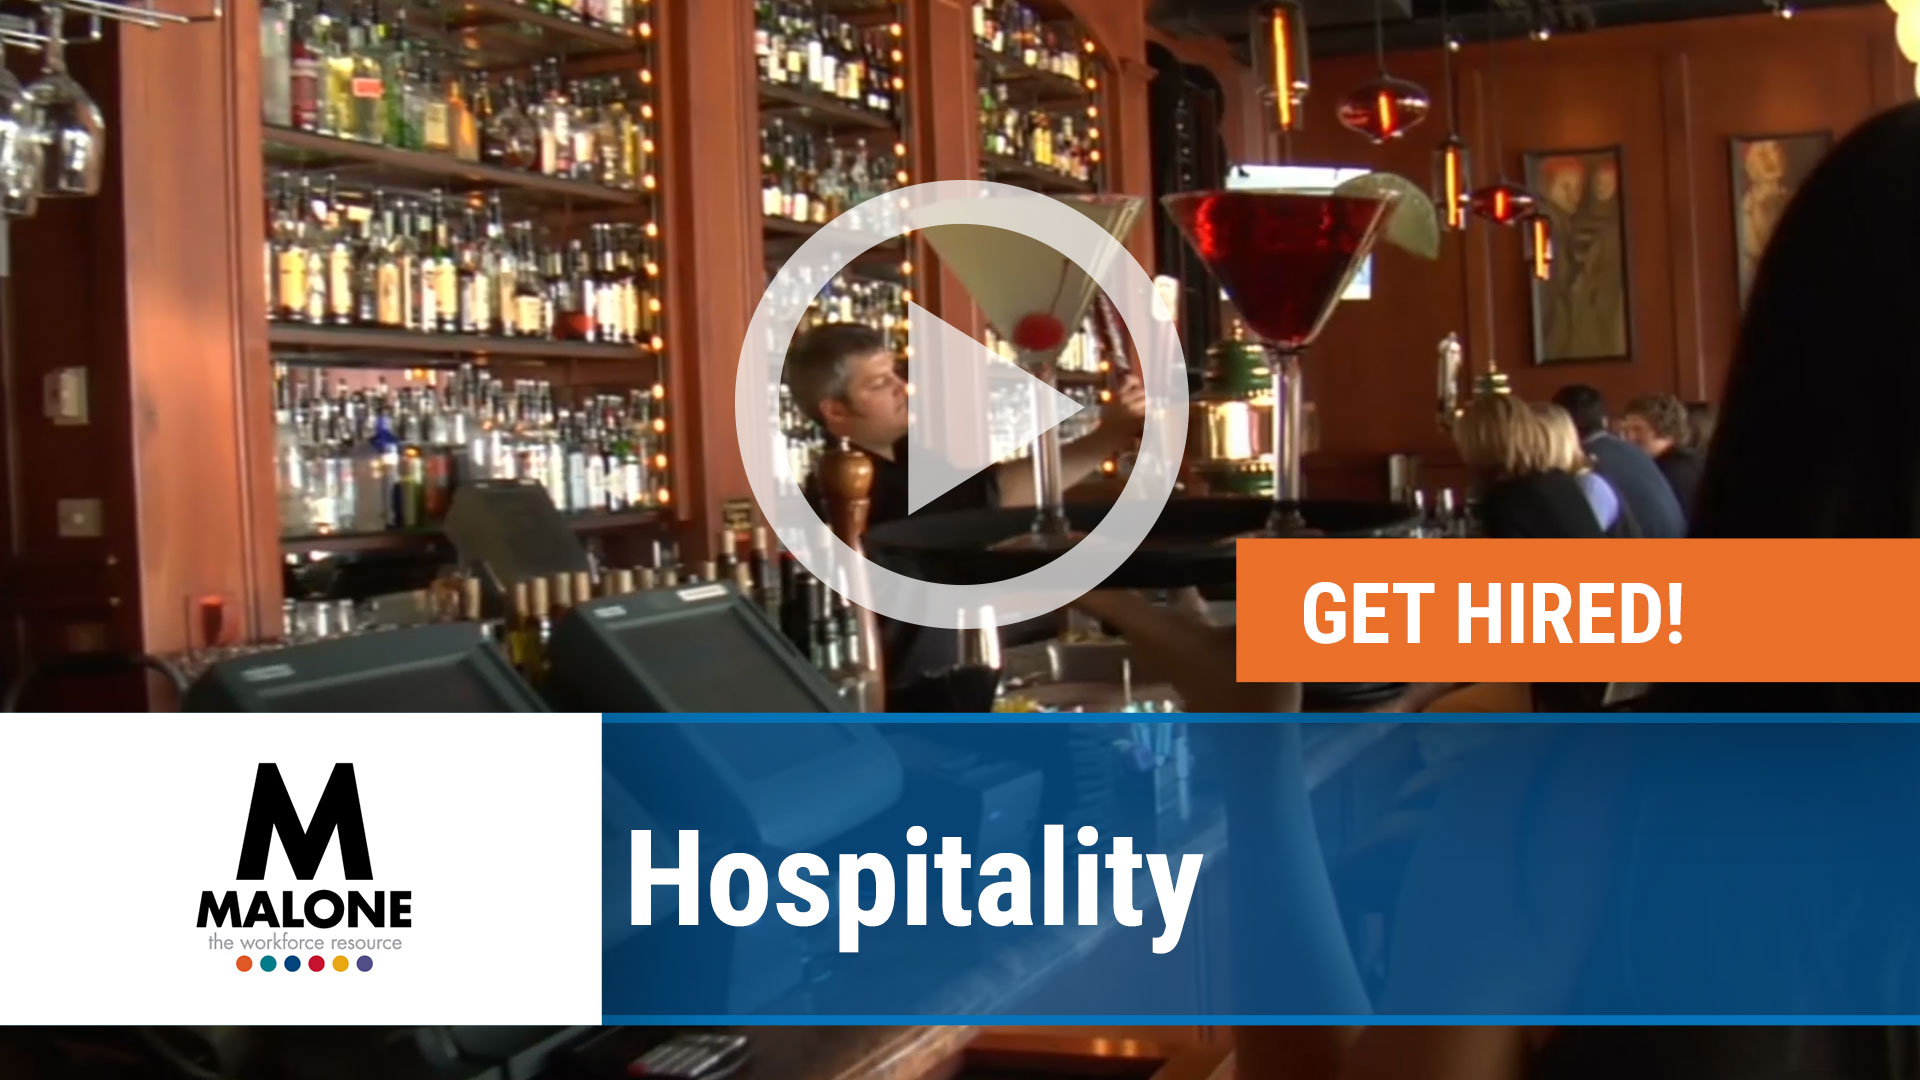 Watch our careers video for available job opening Hospitality Jobs in Arlington Heights, Illinois